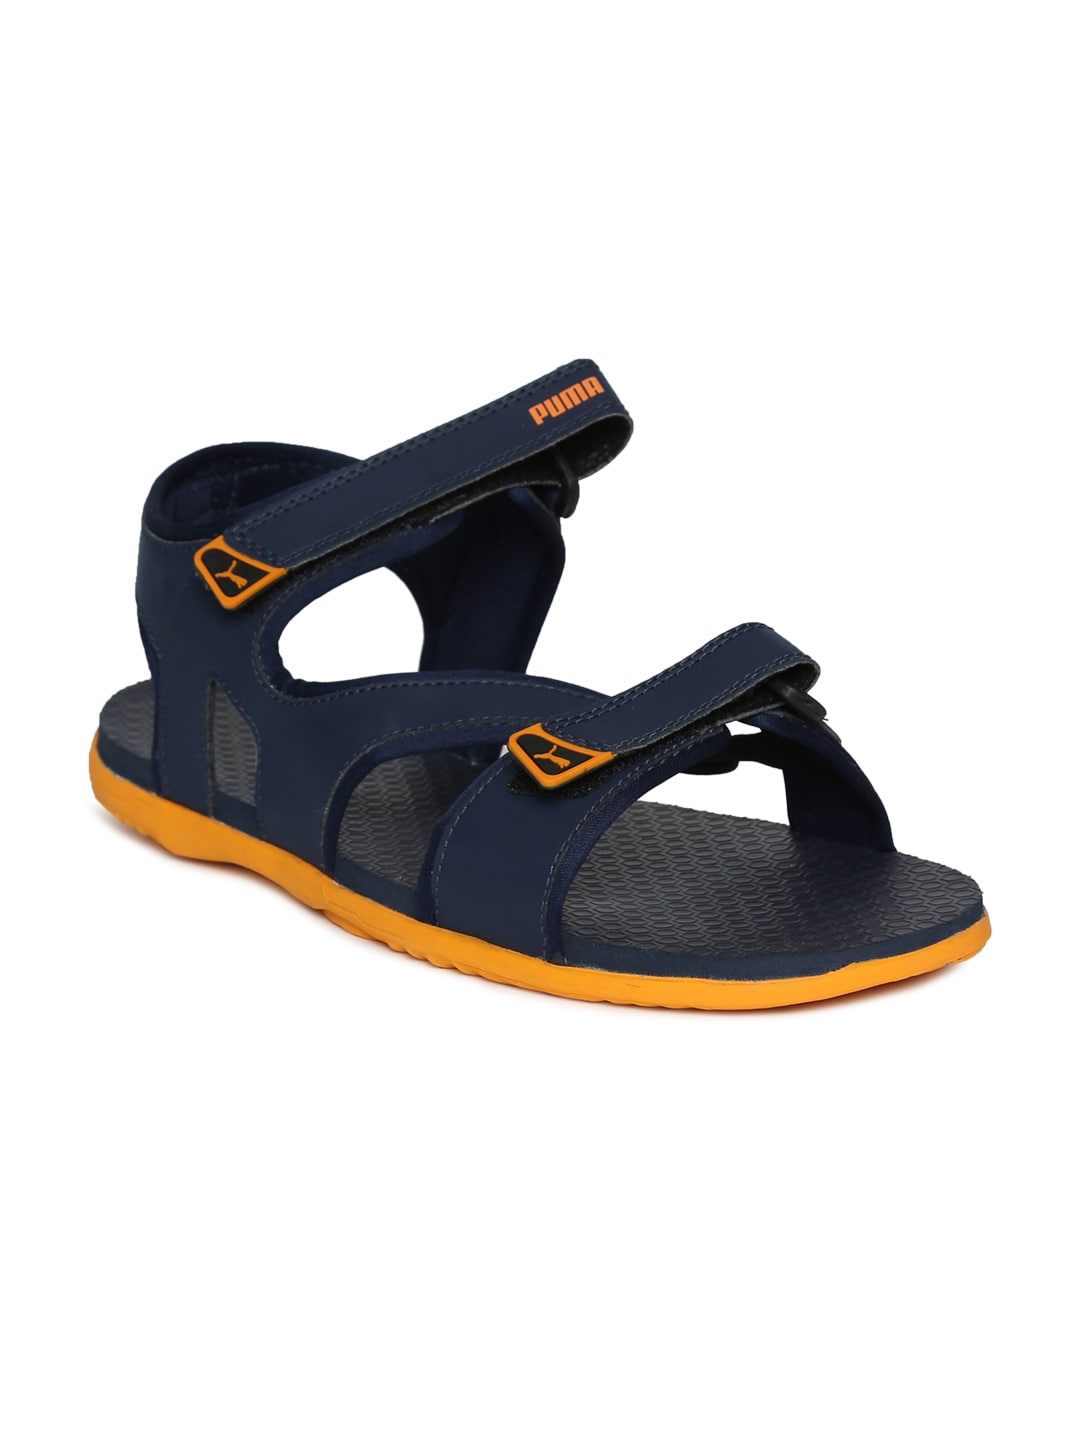 92672f25eff4 Adidas Fila Puma Sports Sandal - Buy Adidas Fila Puma Sports Sandal online  in India